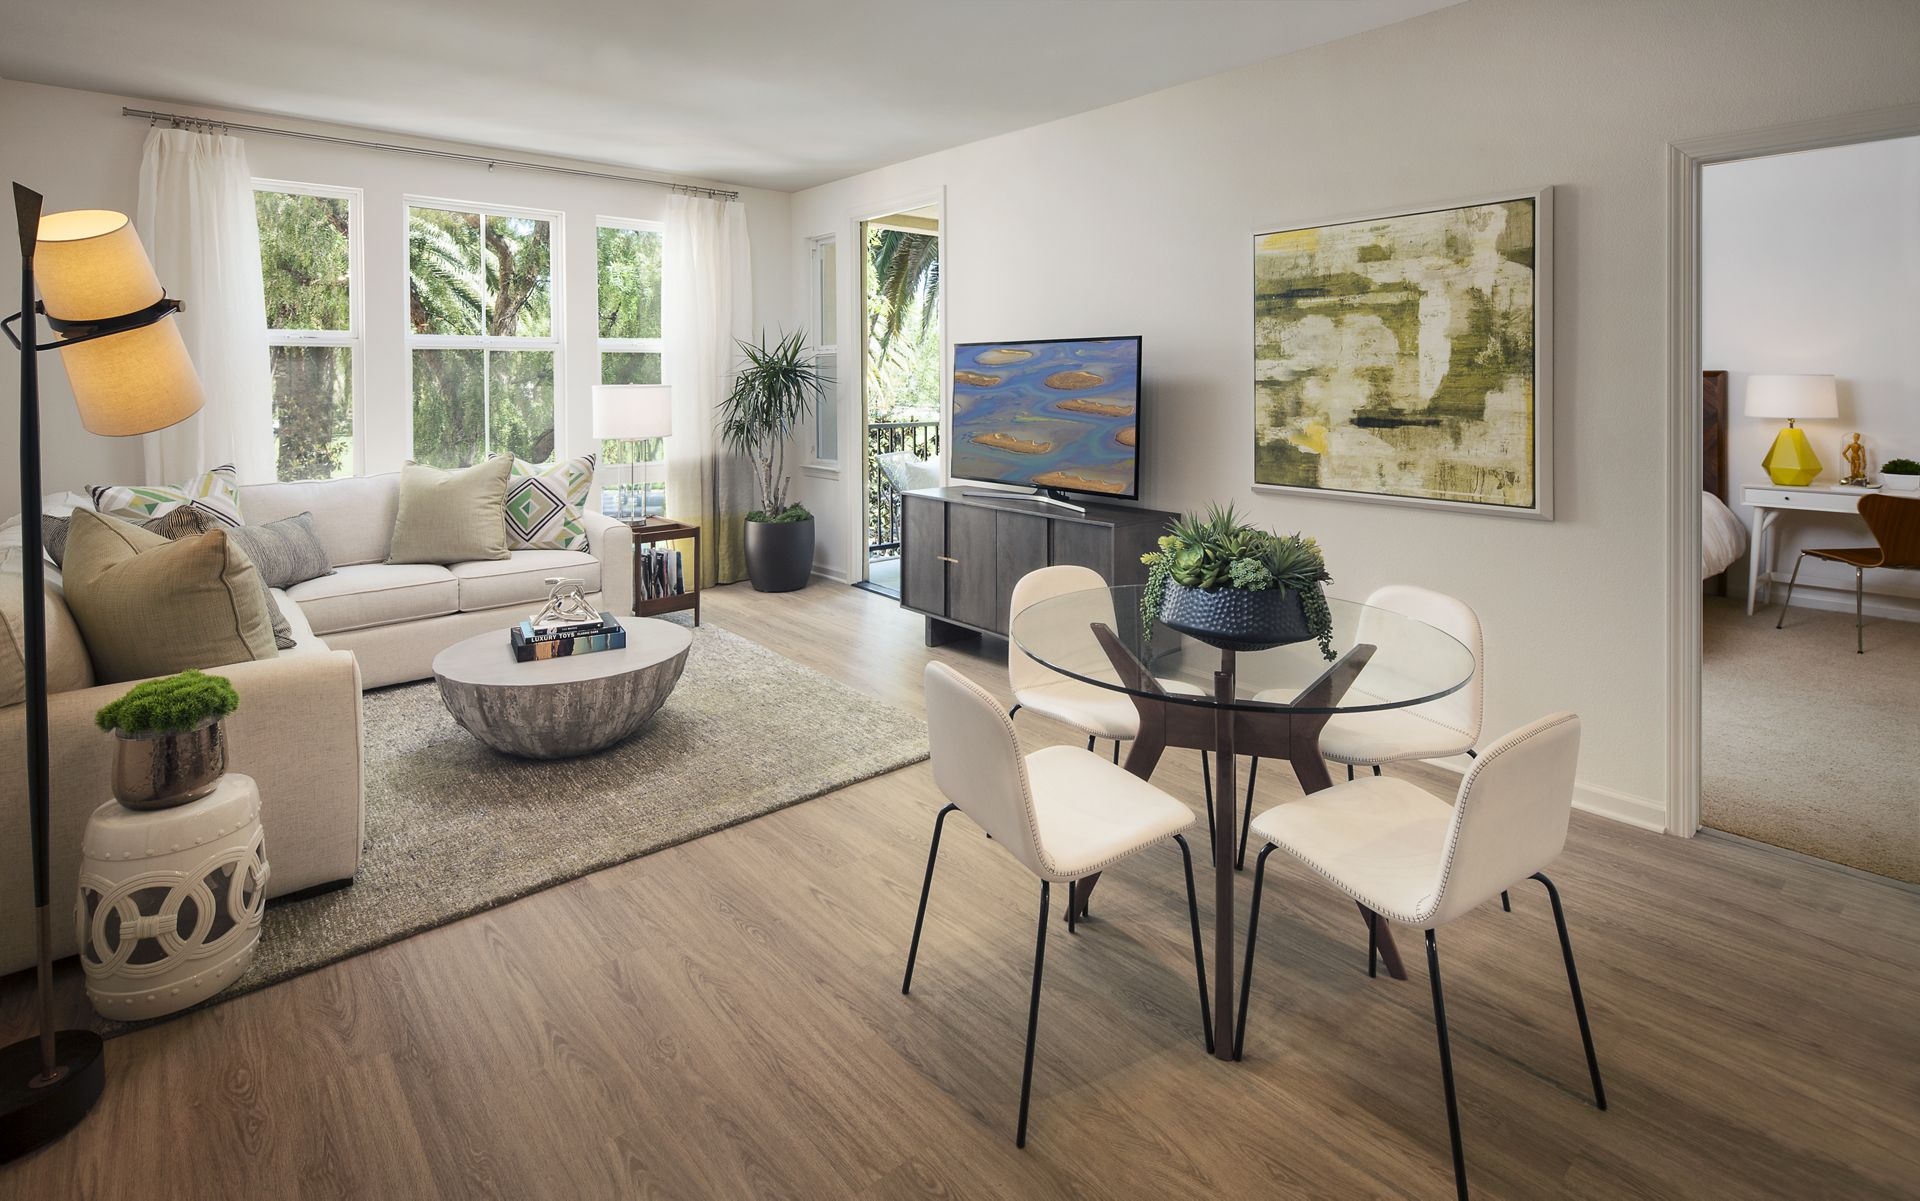 Interior view of a dining space and living room at The Oaks at North Park Apartment Homes in San Jose, CA.